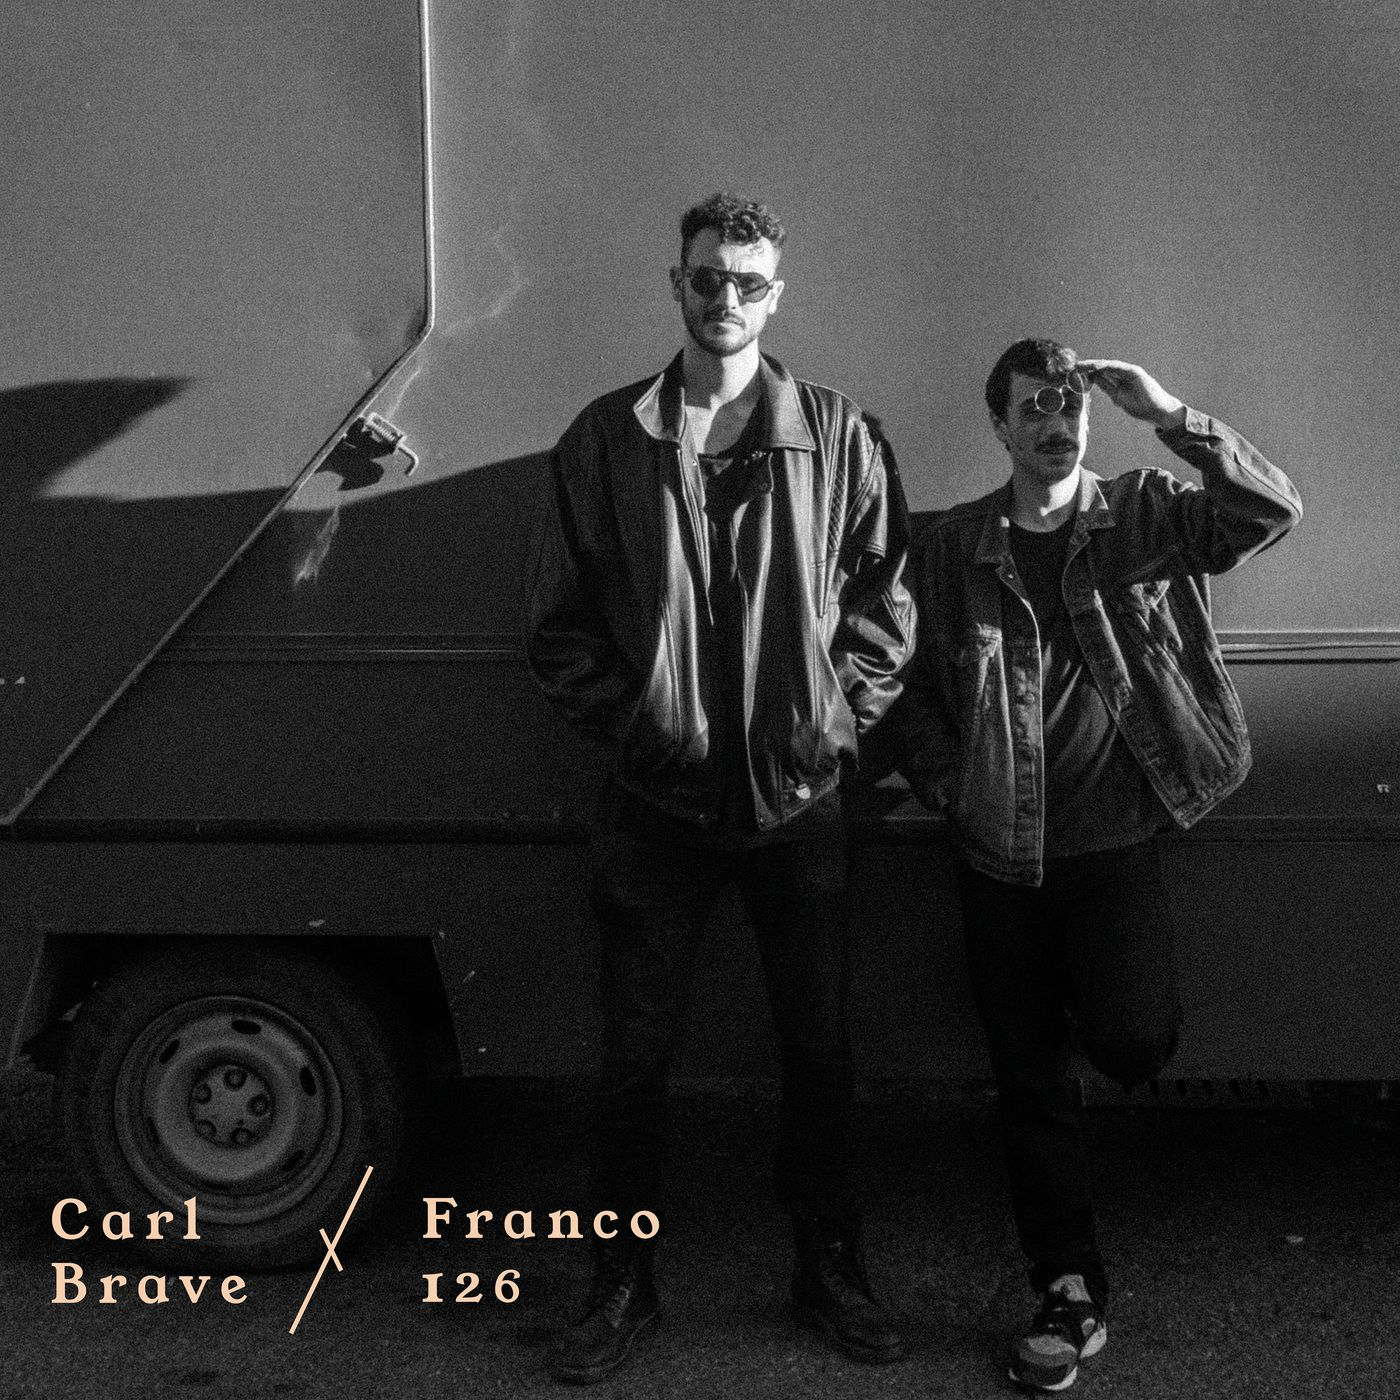 Carl Brave X Franco 126 - Polaroid 2.0 album cover